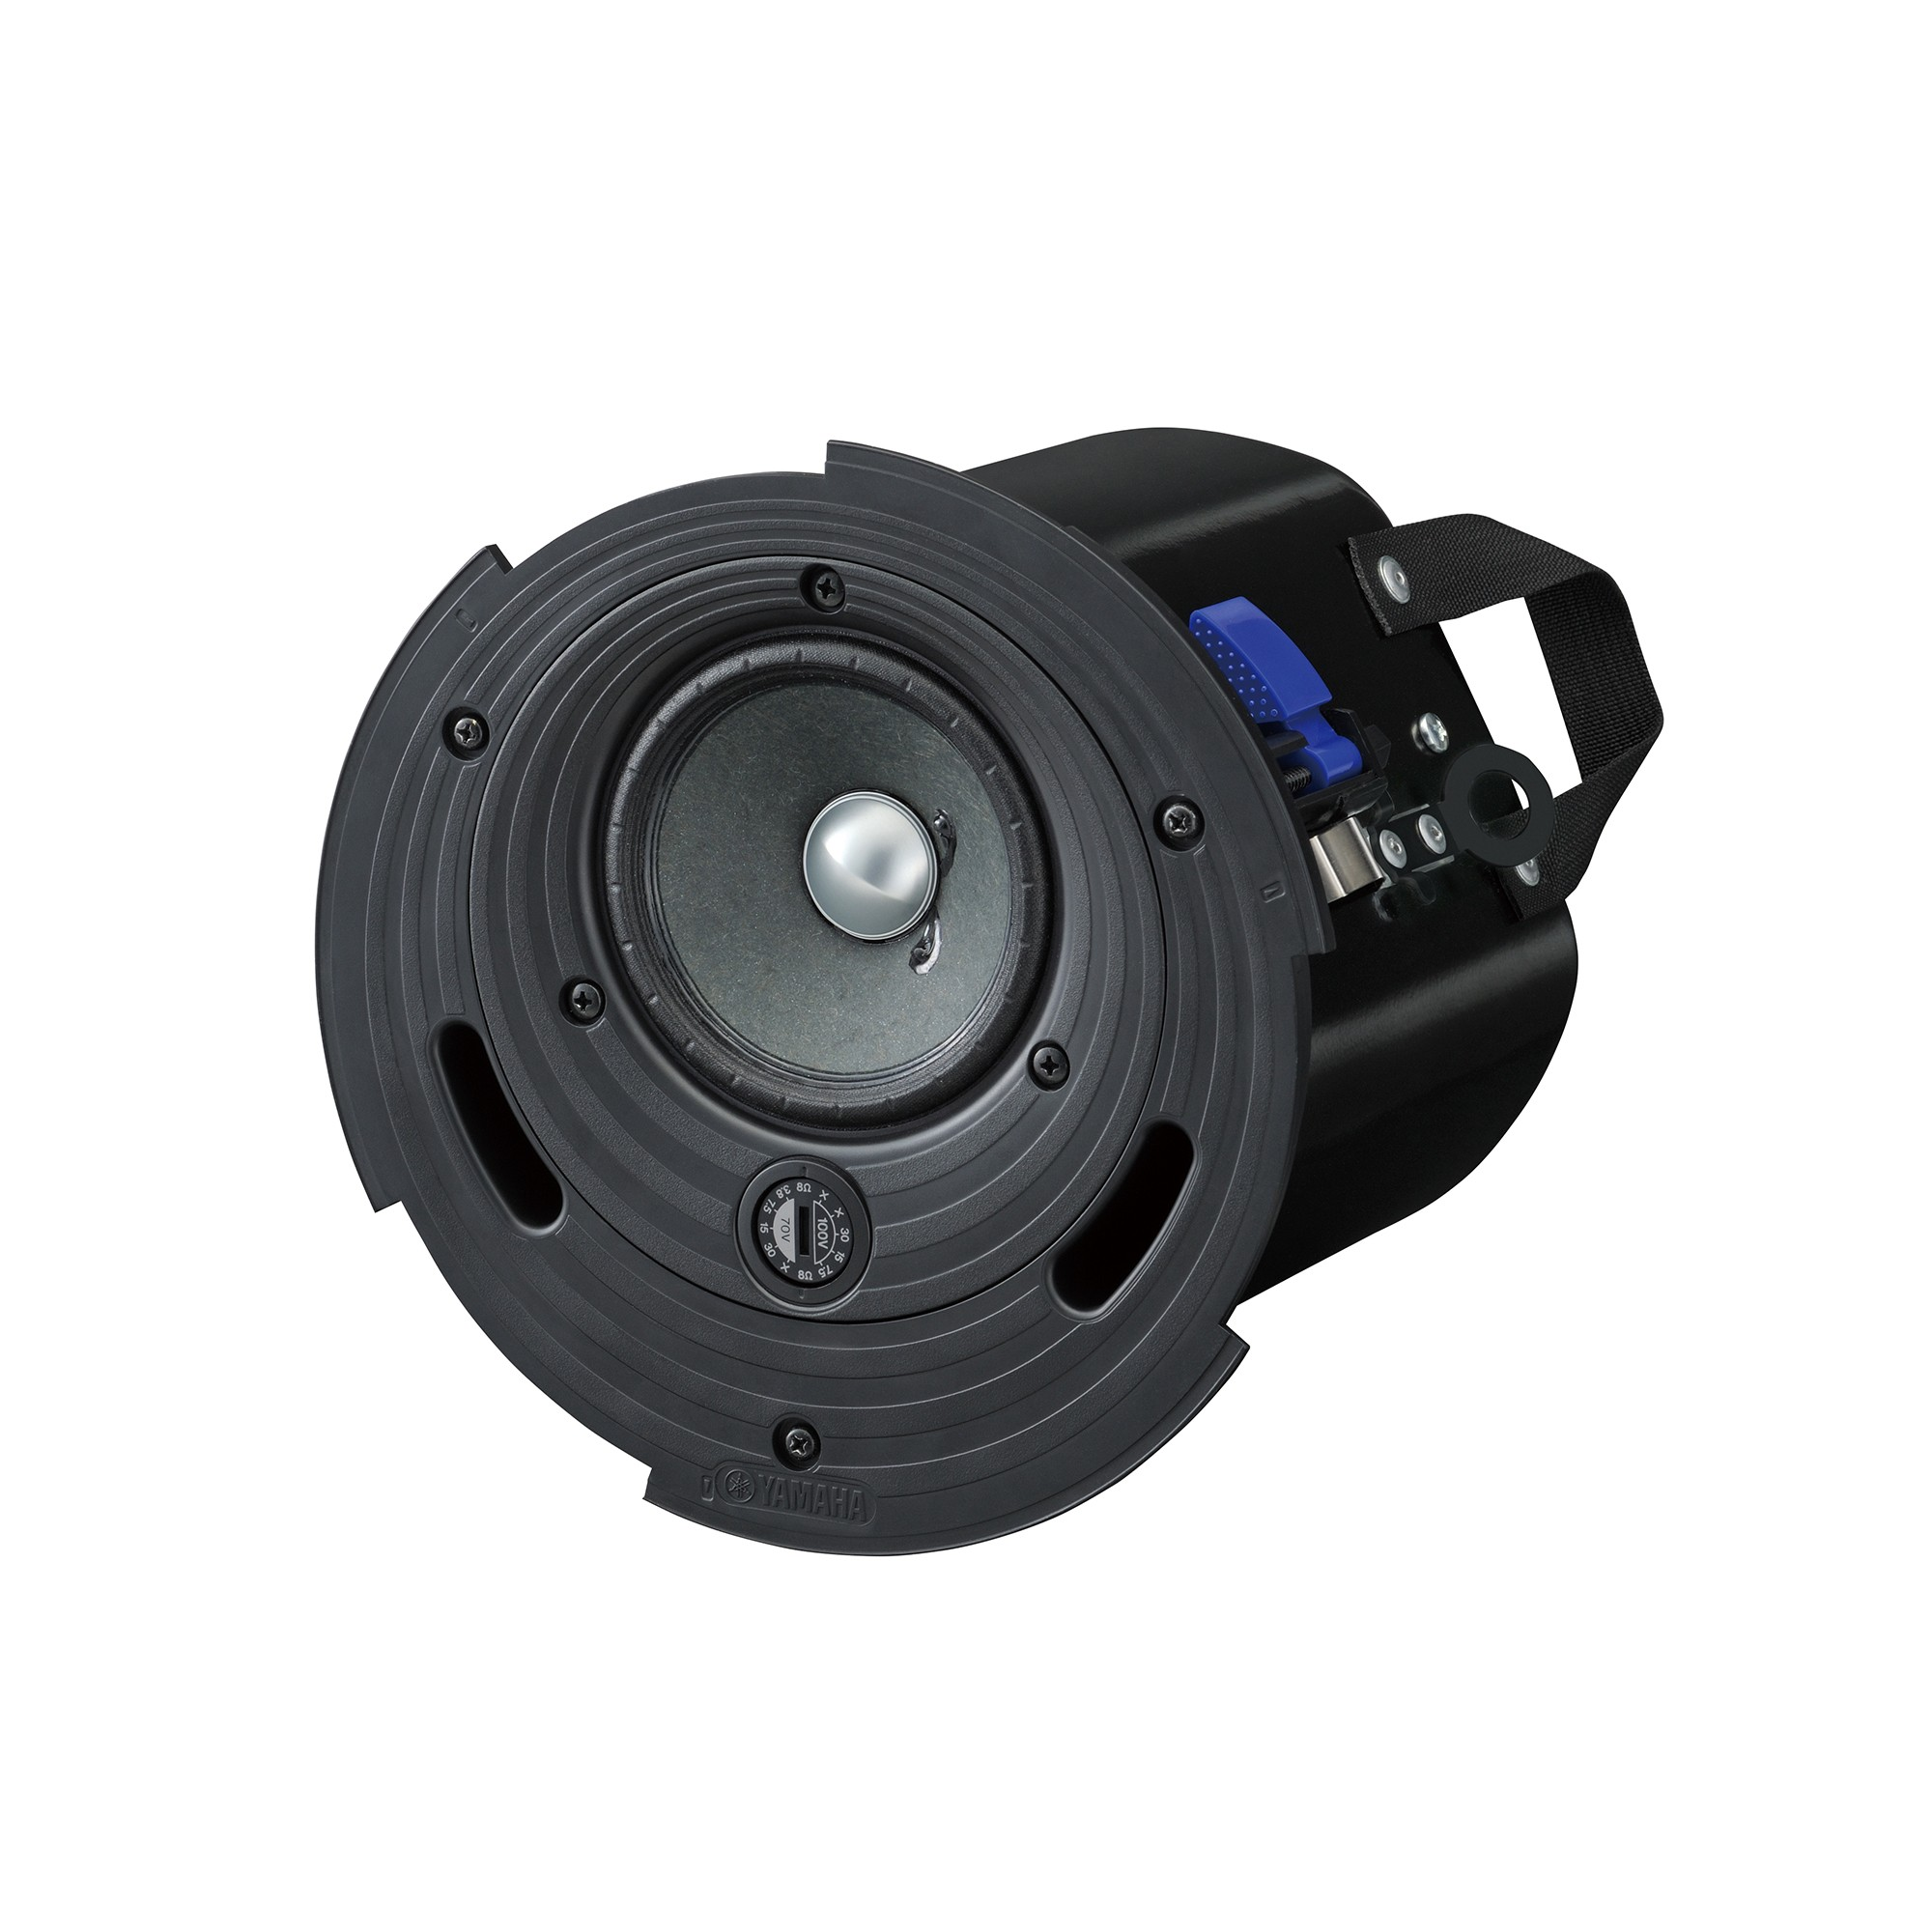 Yamaha sports bar sound system with in ceiling speakers for Yamaha sound system